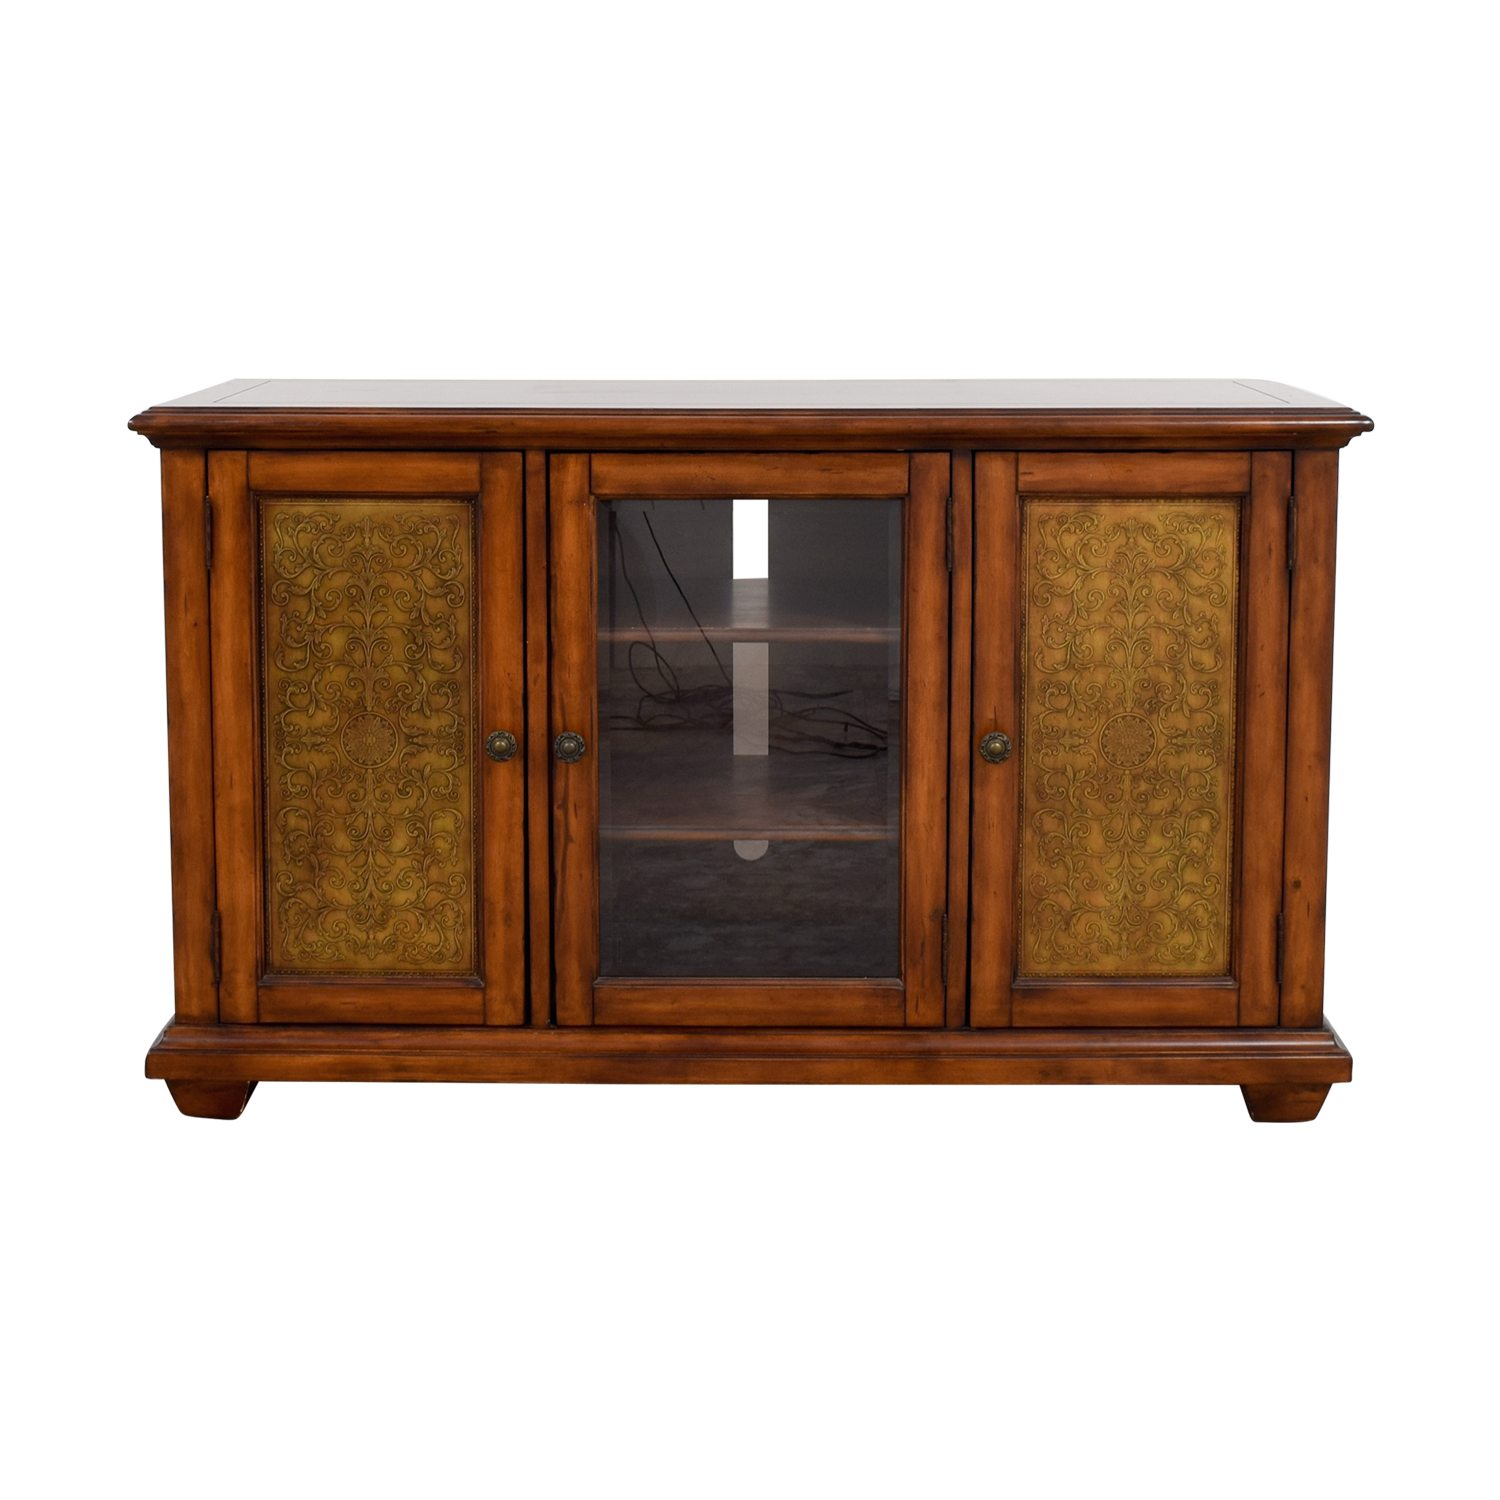 Hooker Furniture Hooker Furniture Media Console with Brass in Distressed Wood Finish dimensions